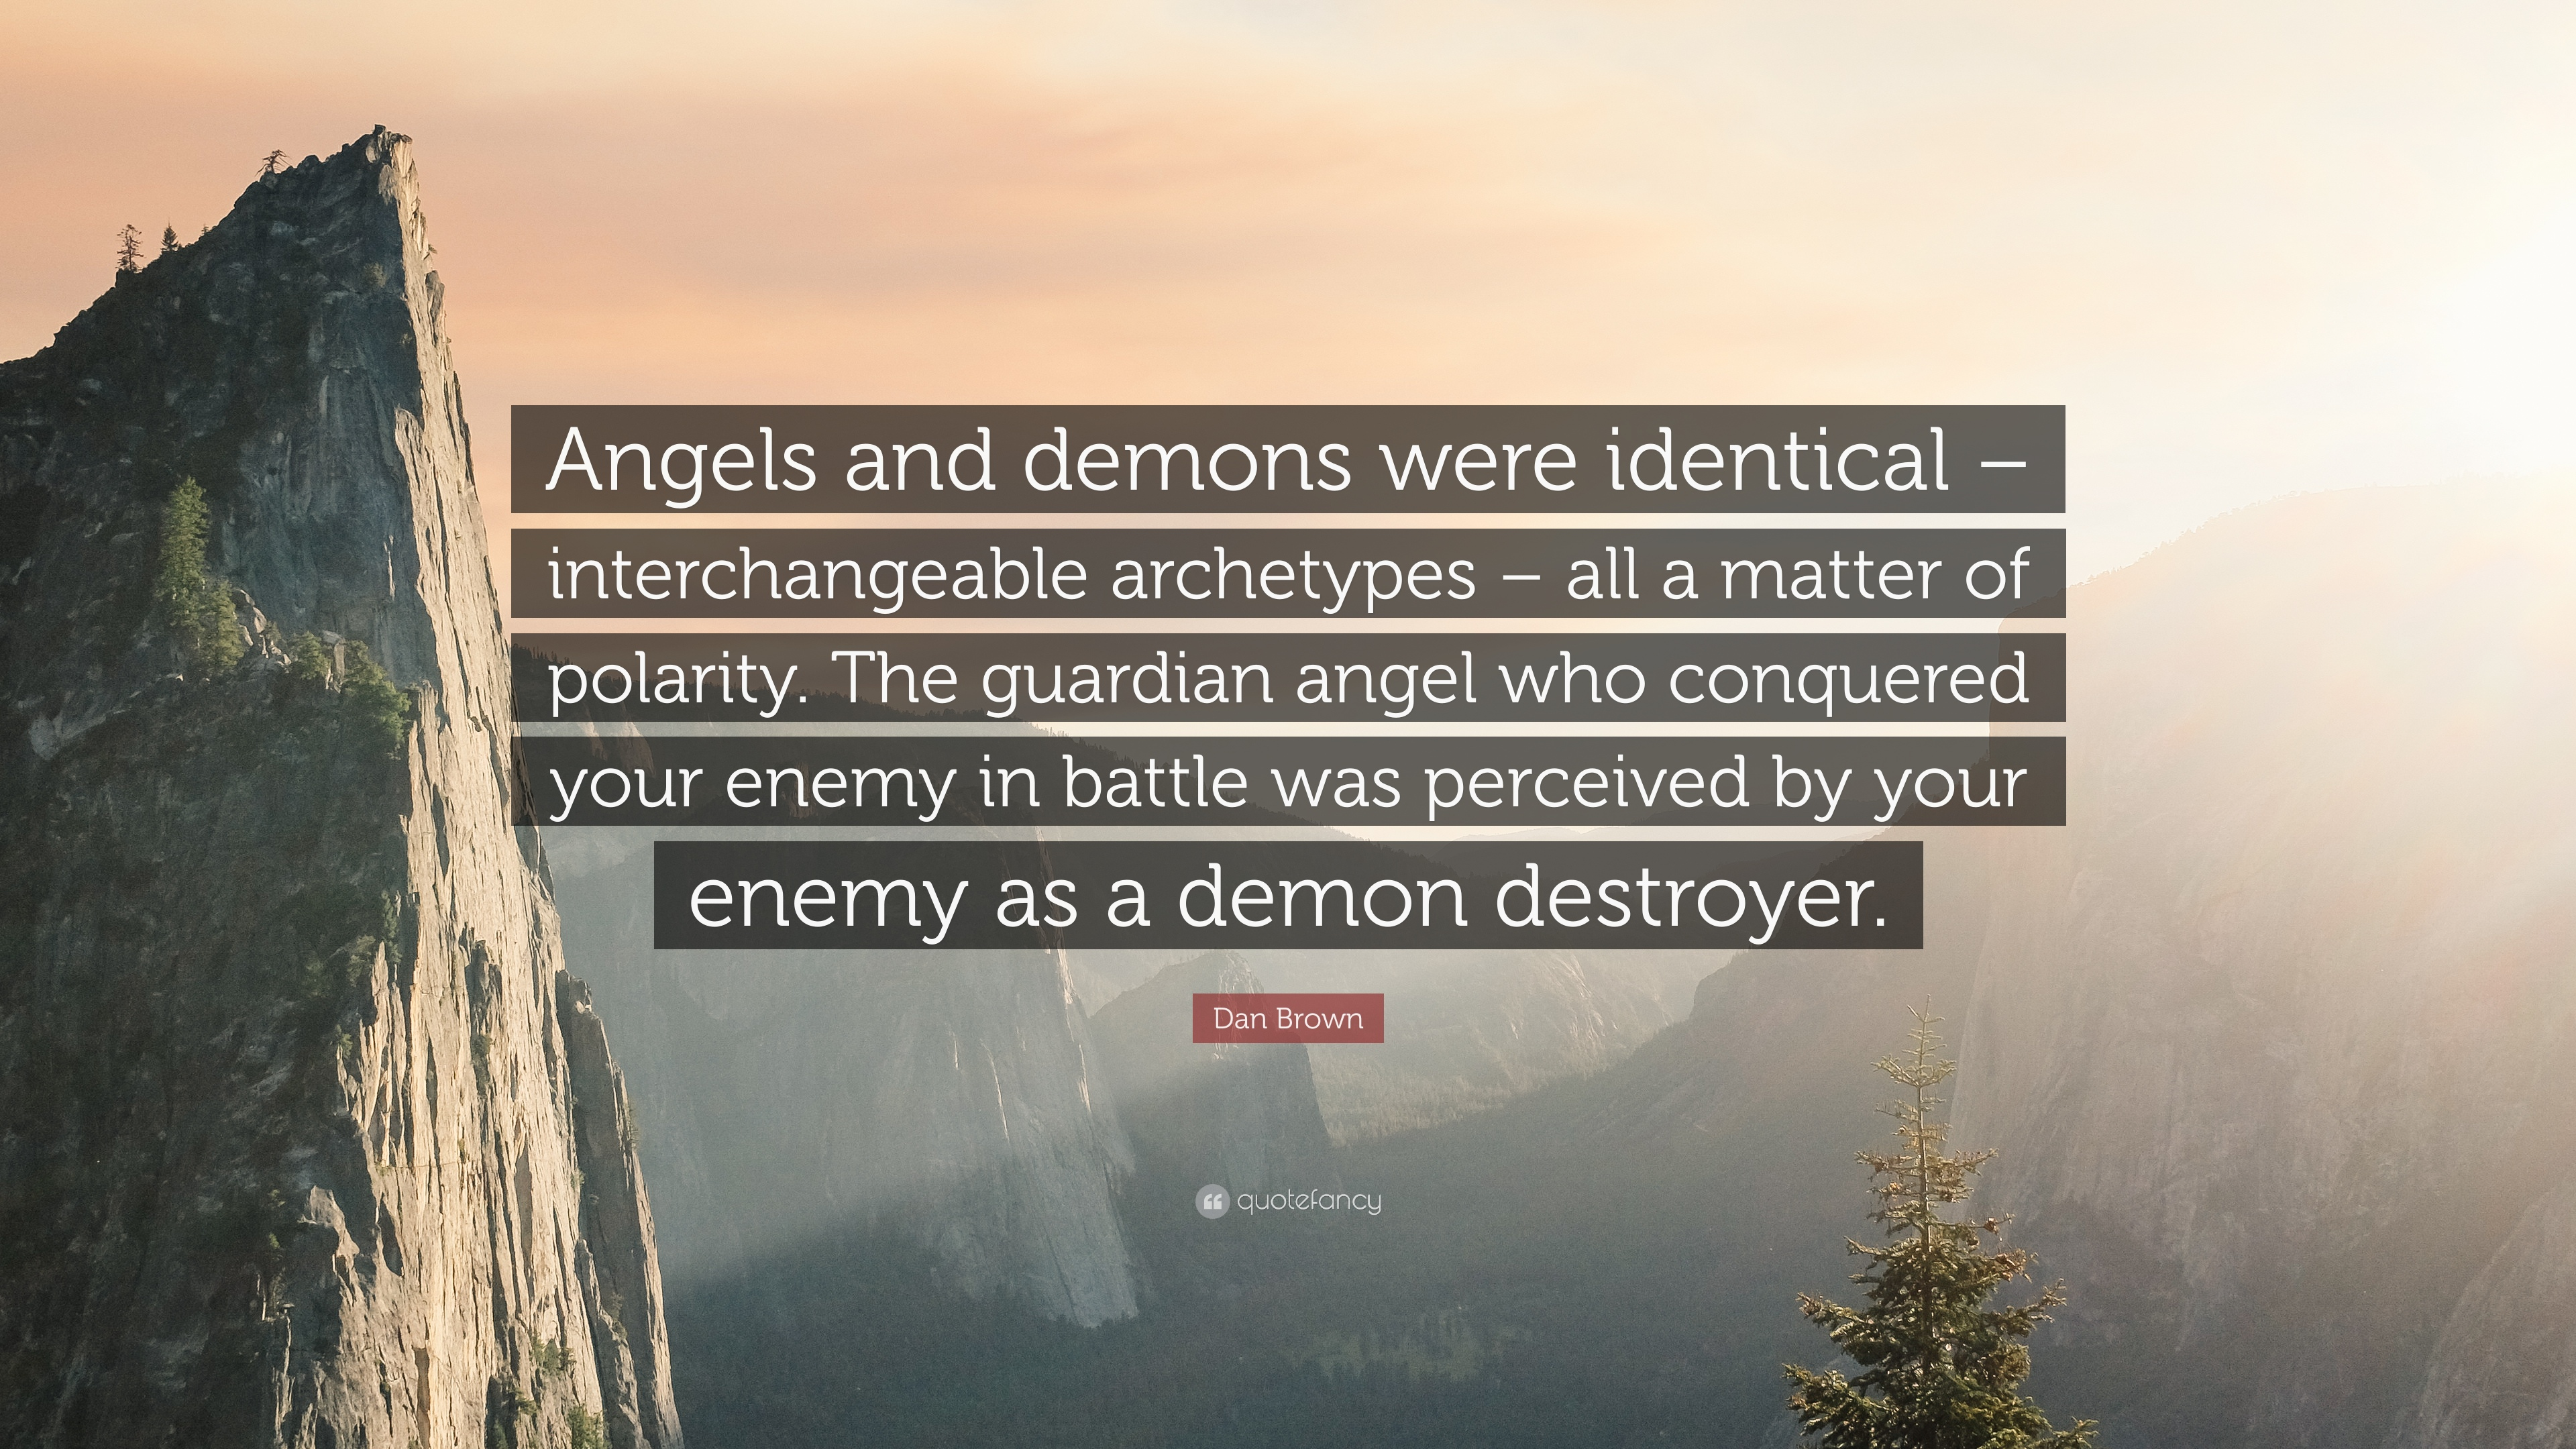 Dan brown quote angels and demons were identical interchangeable archetypes all a